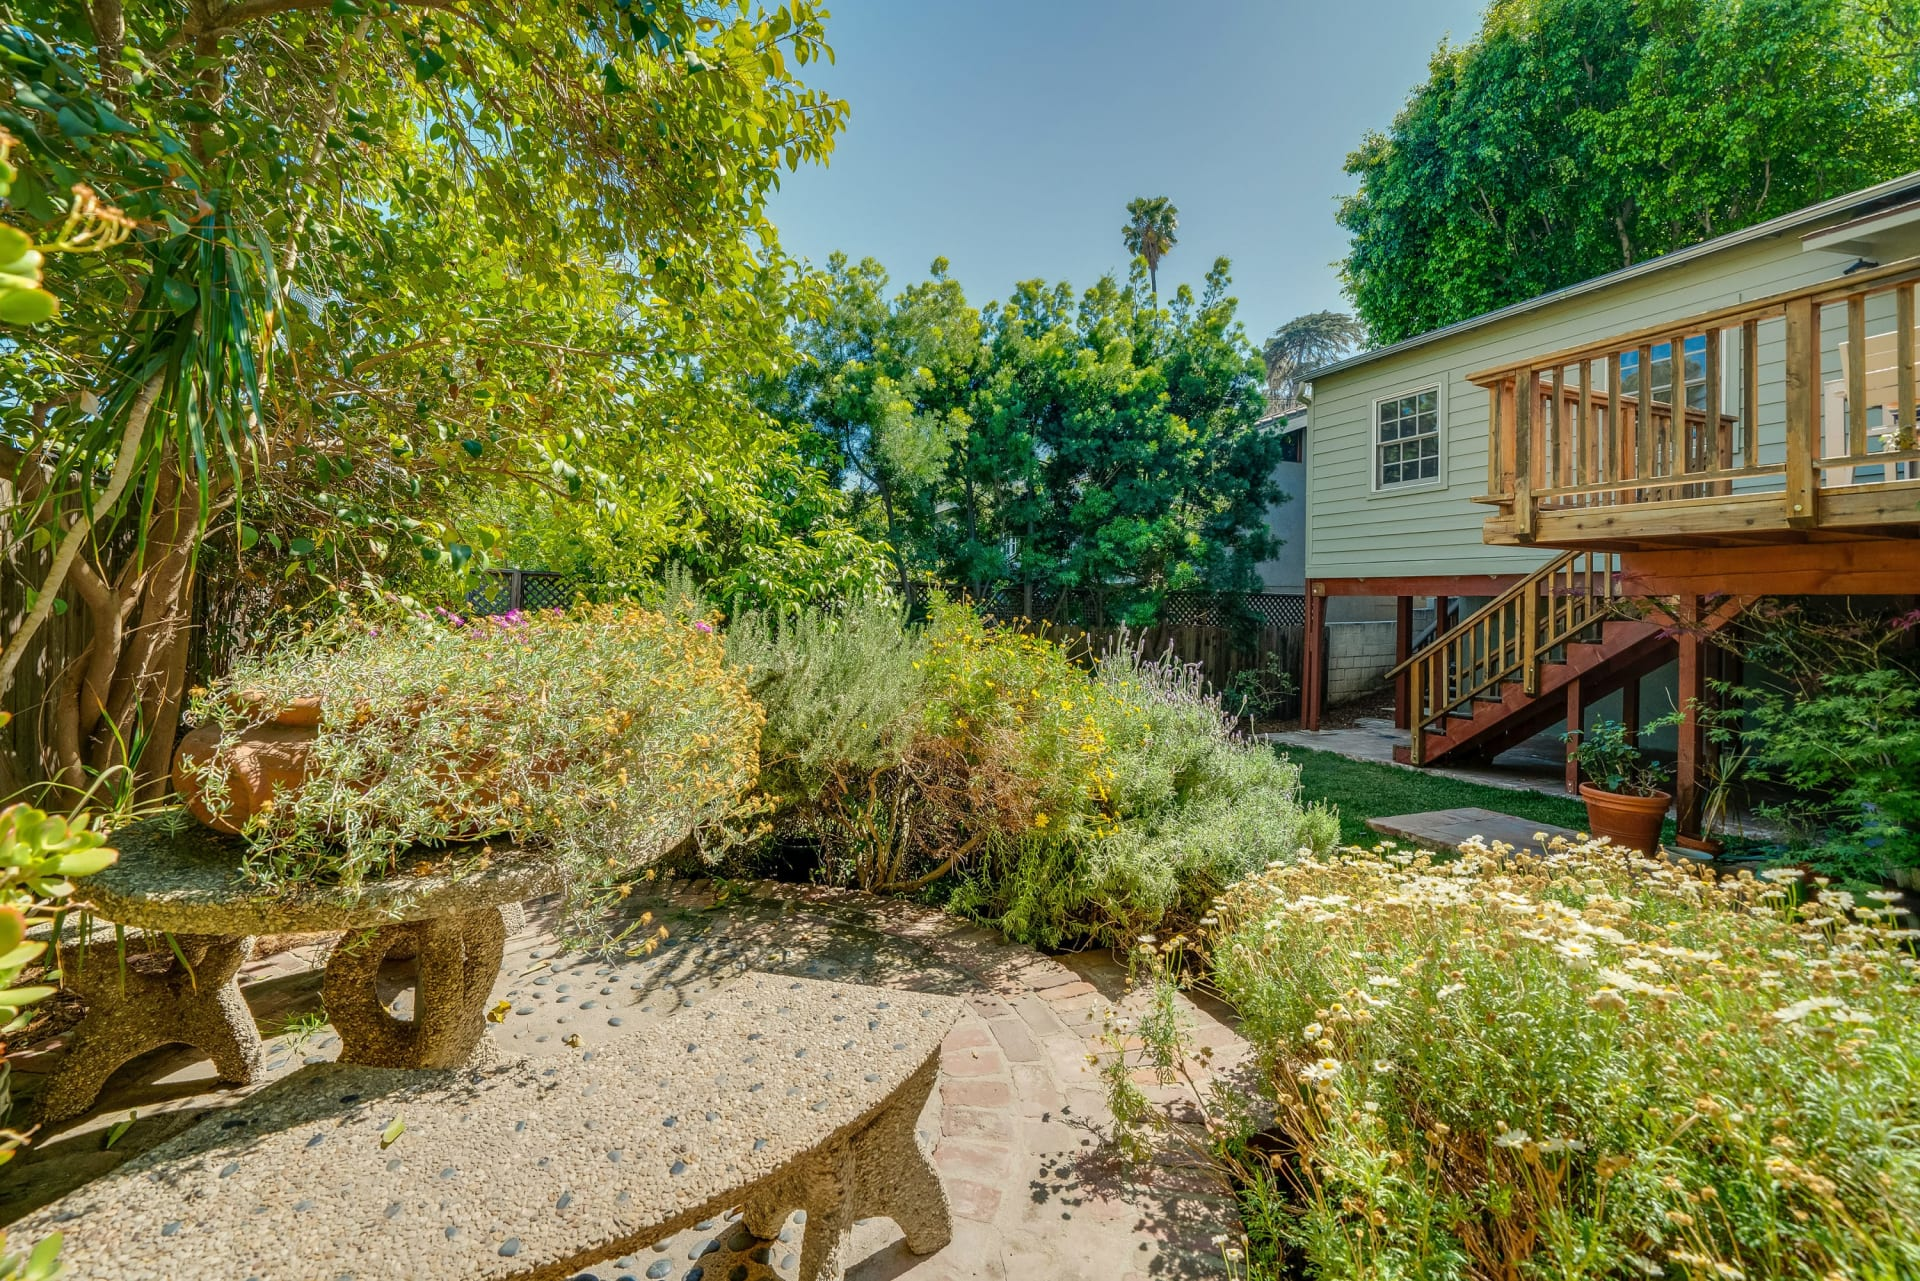 Hooray for the Hollywood Manor - sold $200K over asking photo